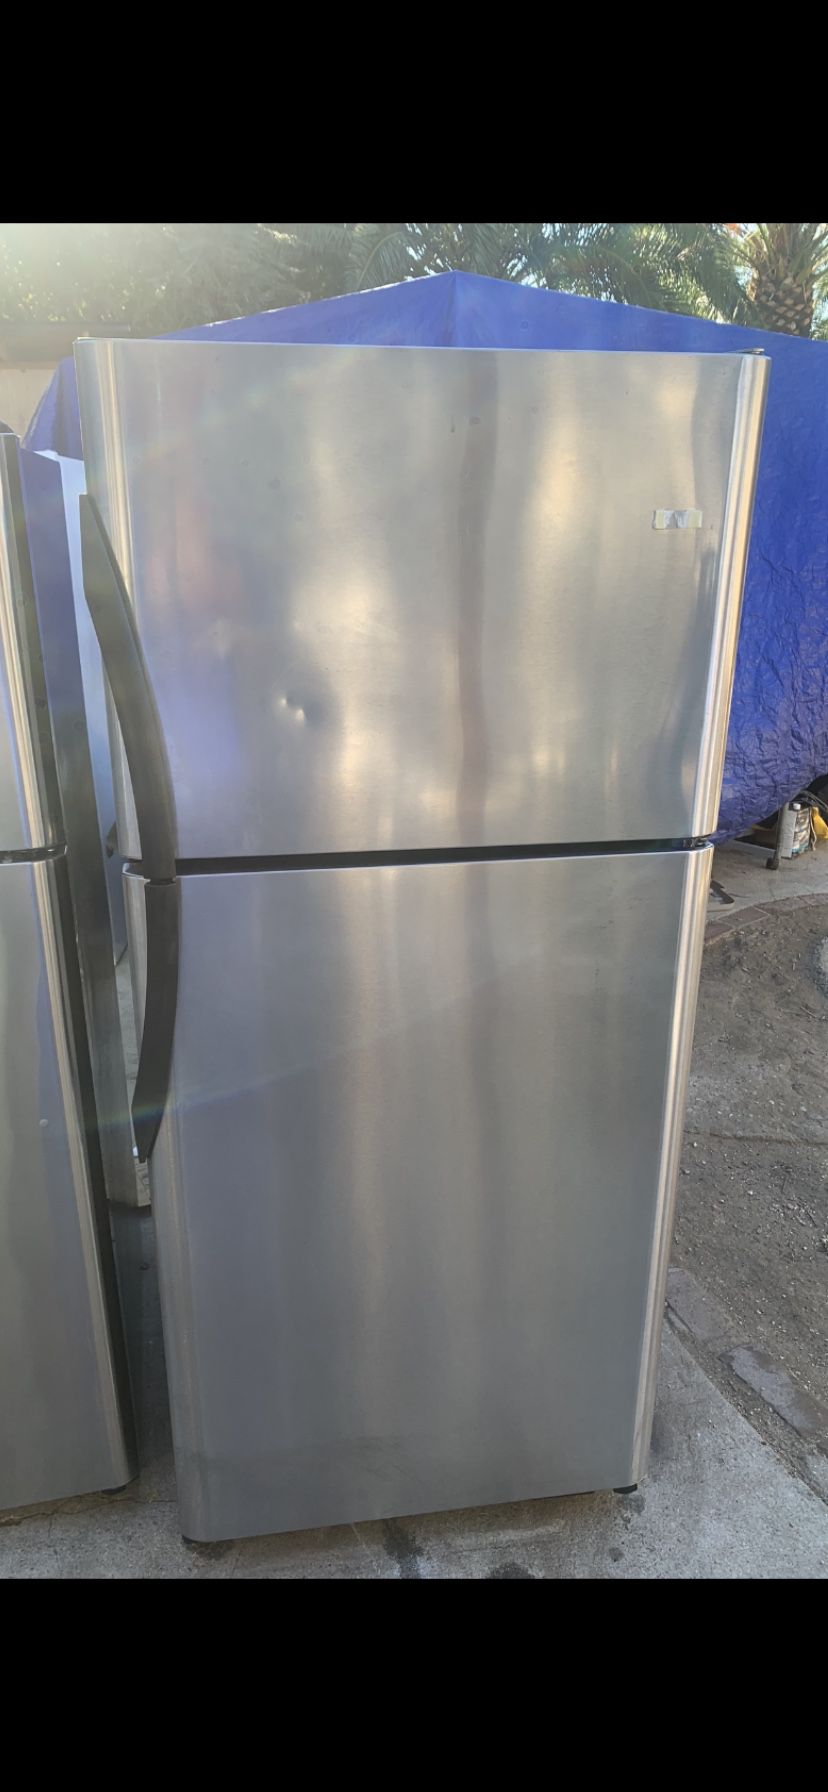 Stainless Steel Frigidaire FREE Delivery 🚚 In San Fernando